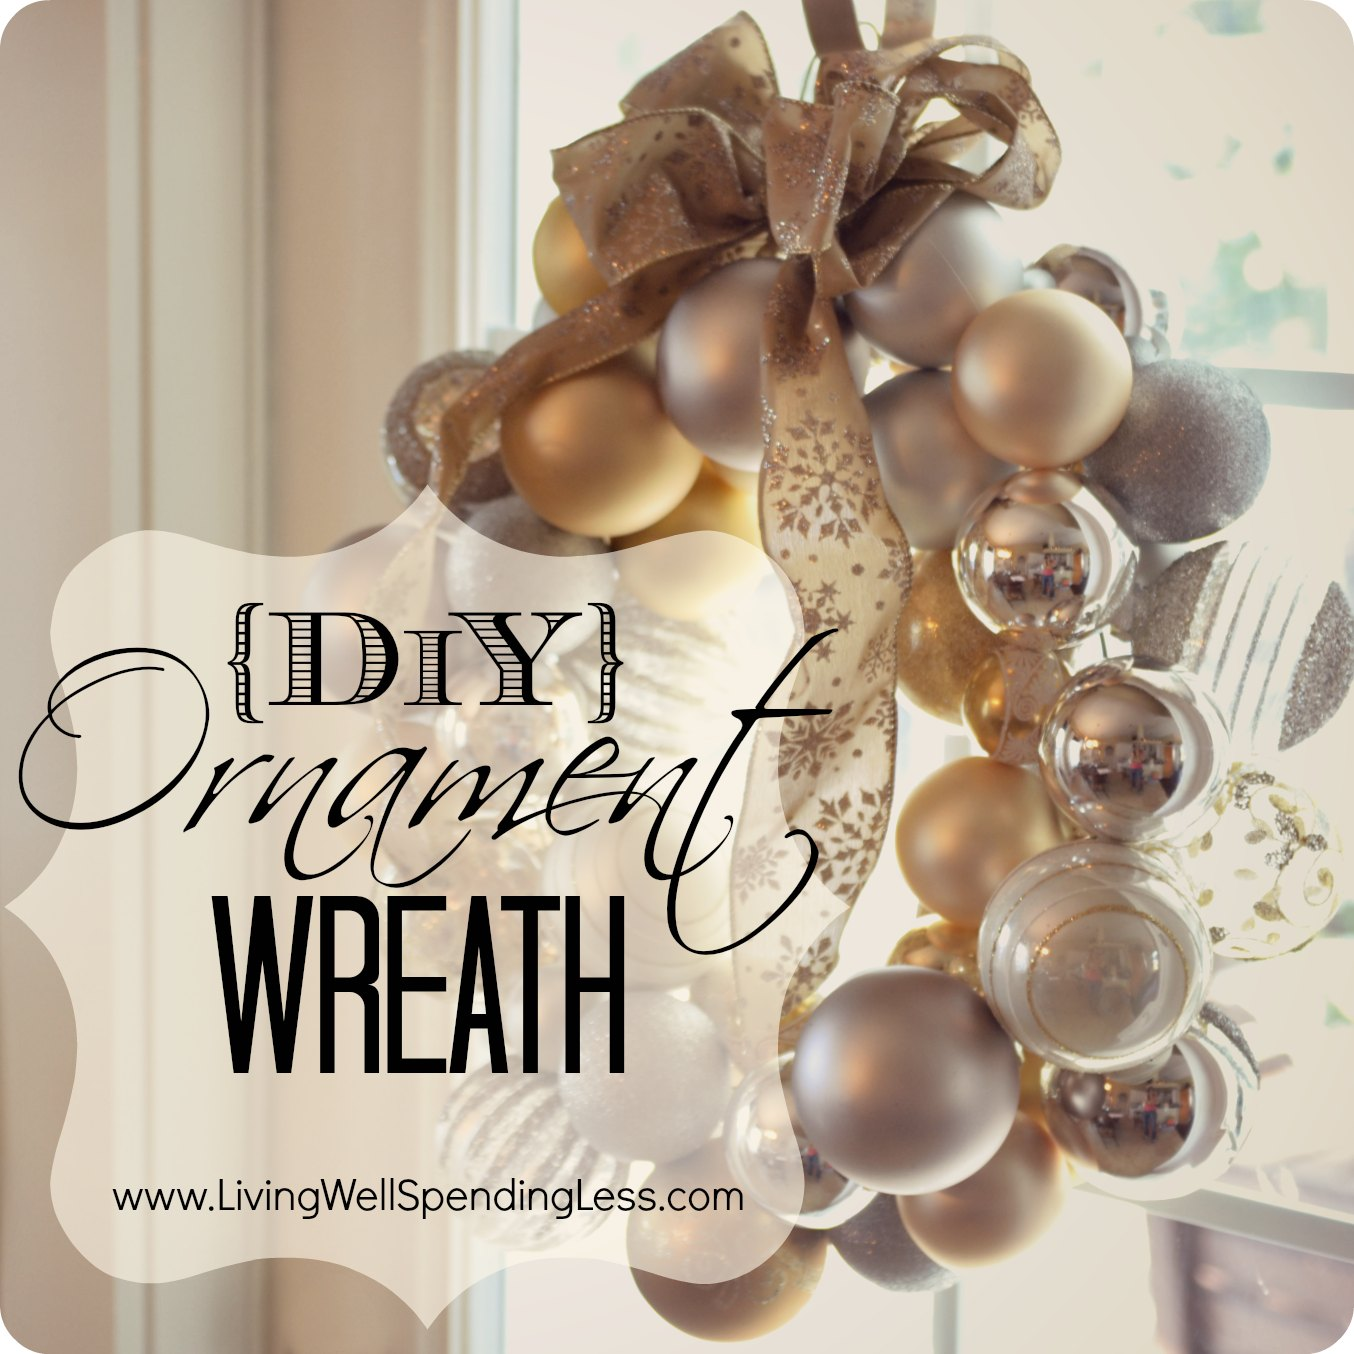 DiY Ornament Wreath | How to make an Ornament Wreath Handmade Holidays